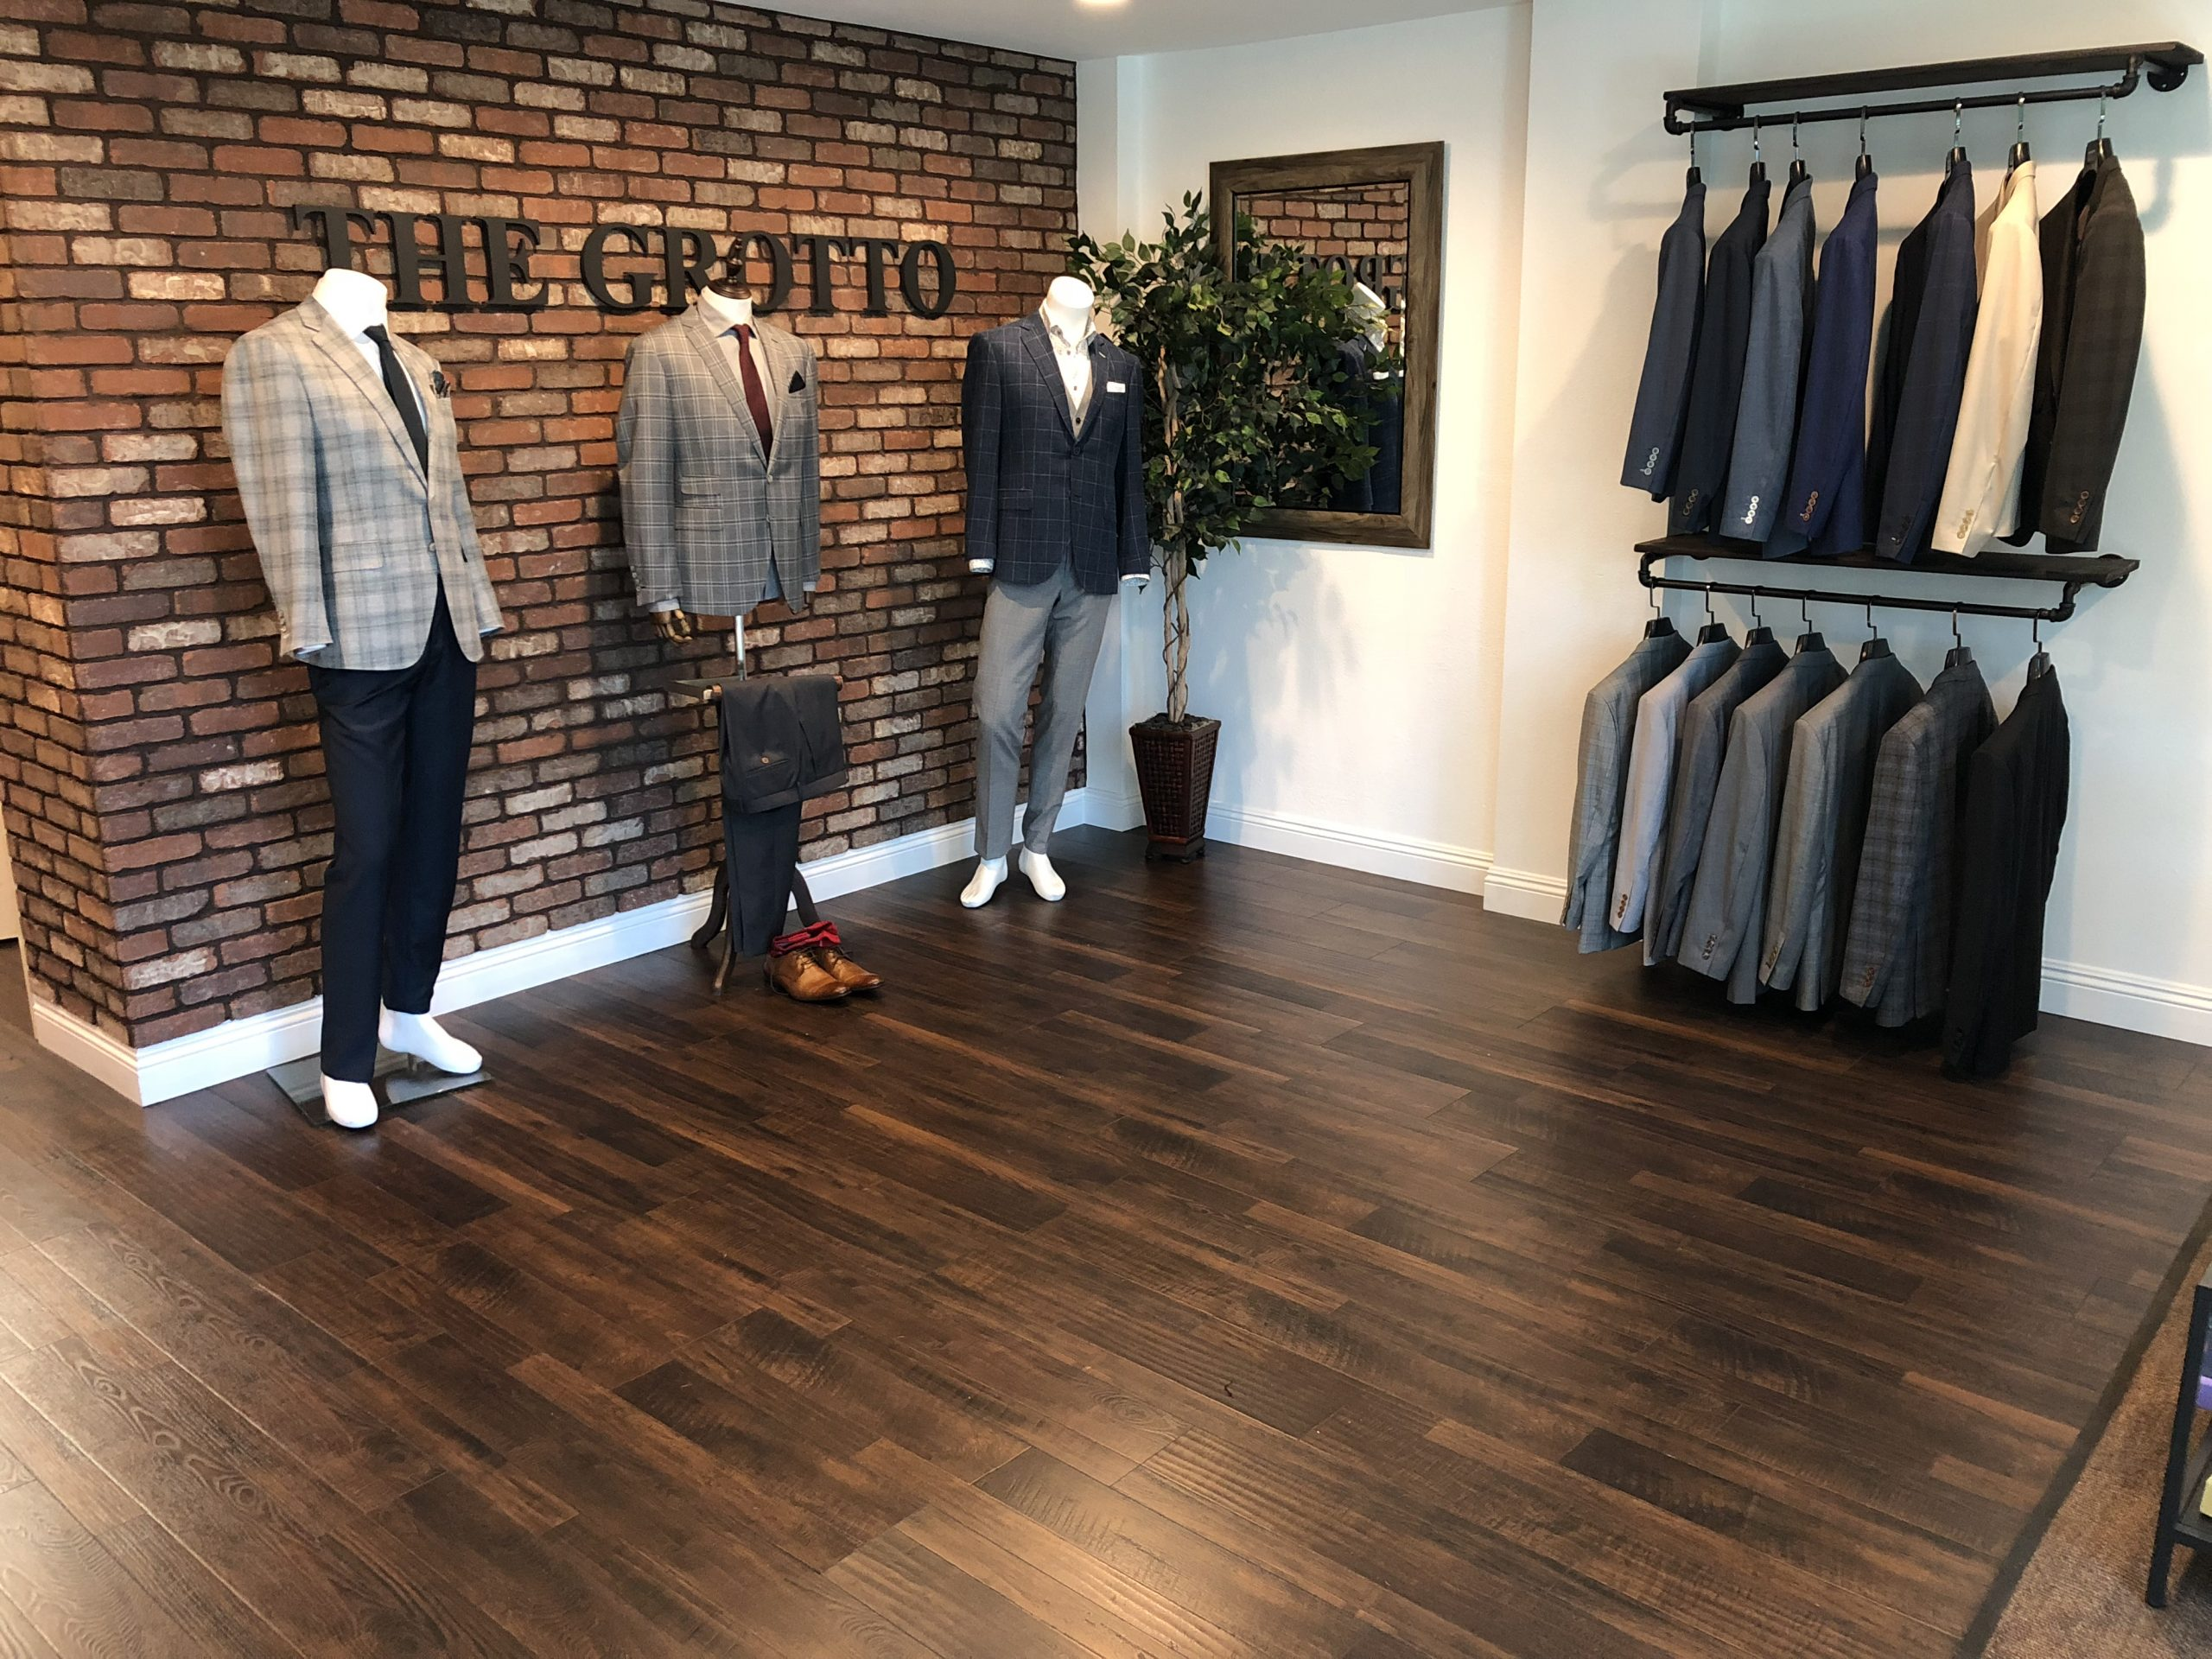 The Grotto Menswear Grooms Grotto